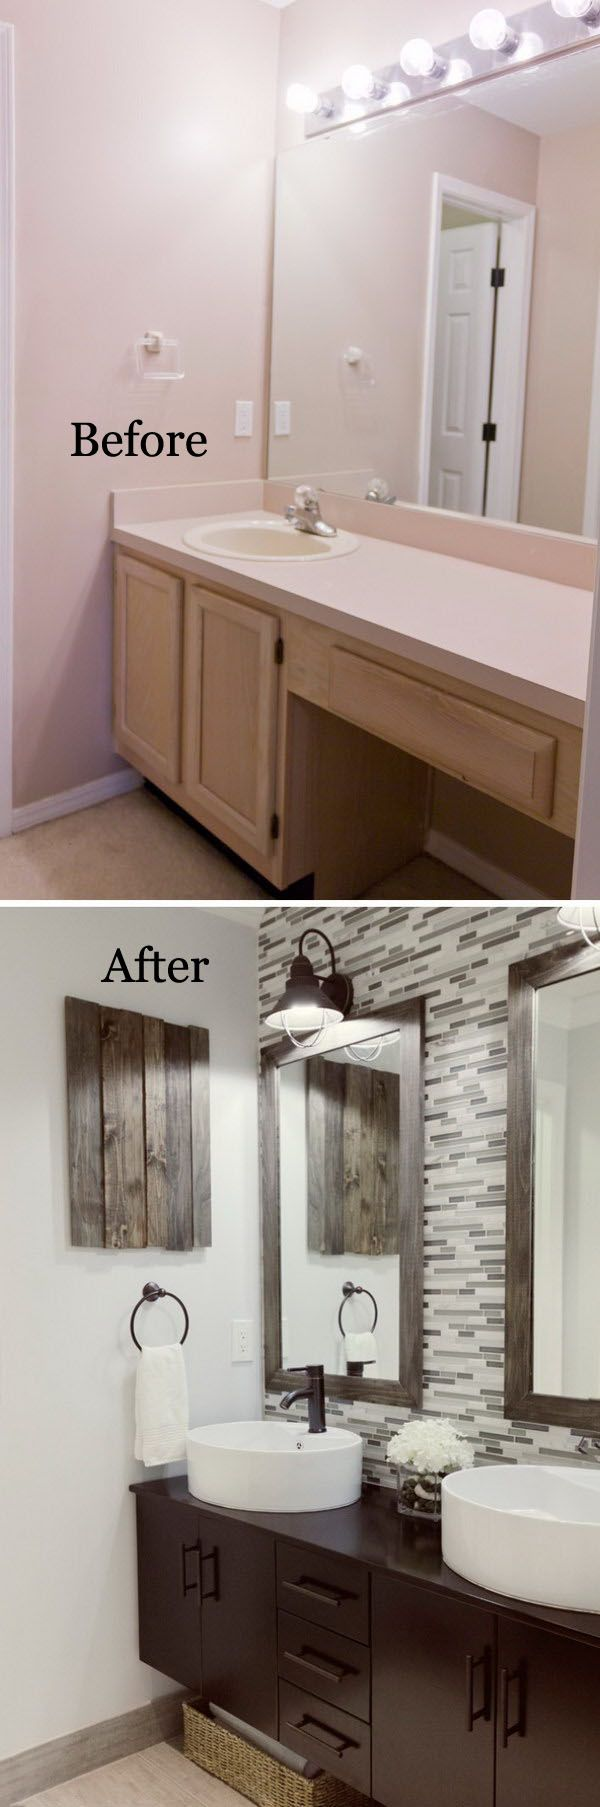 Bathroom Remodeling Photos best 25+ master bath remodel ideas on pinterest | tiny master